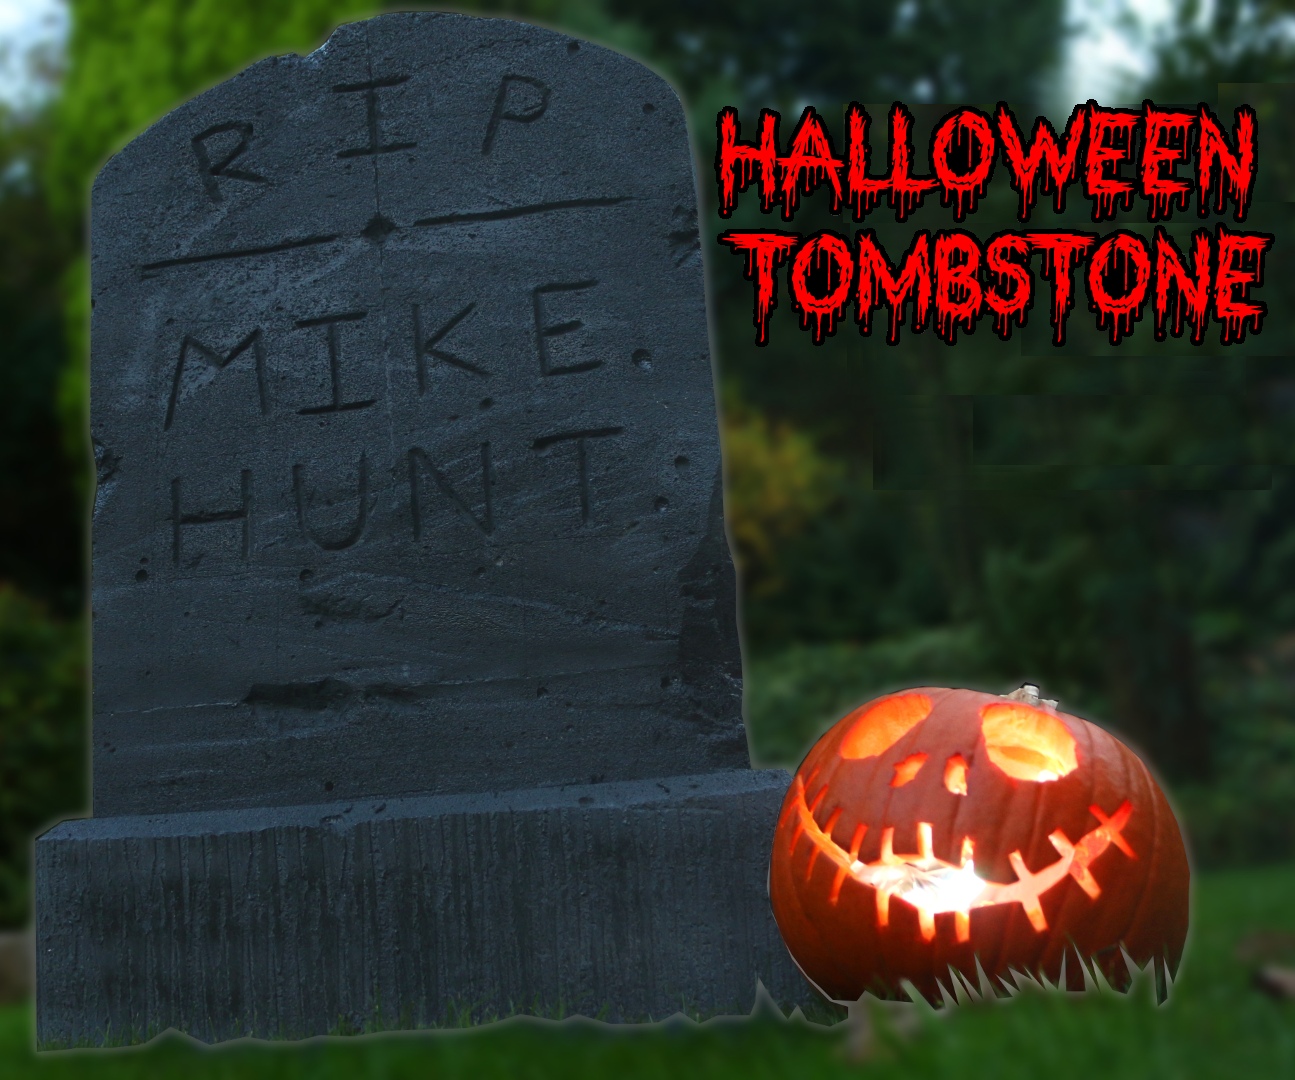 How to Make a Halloween Tombstone From Breeze Blocks